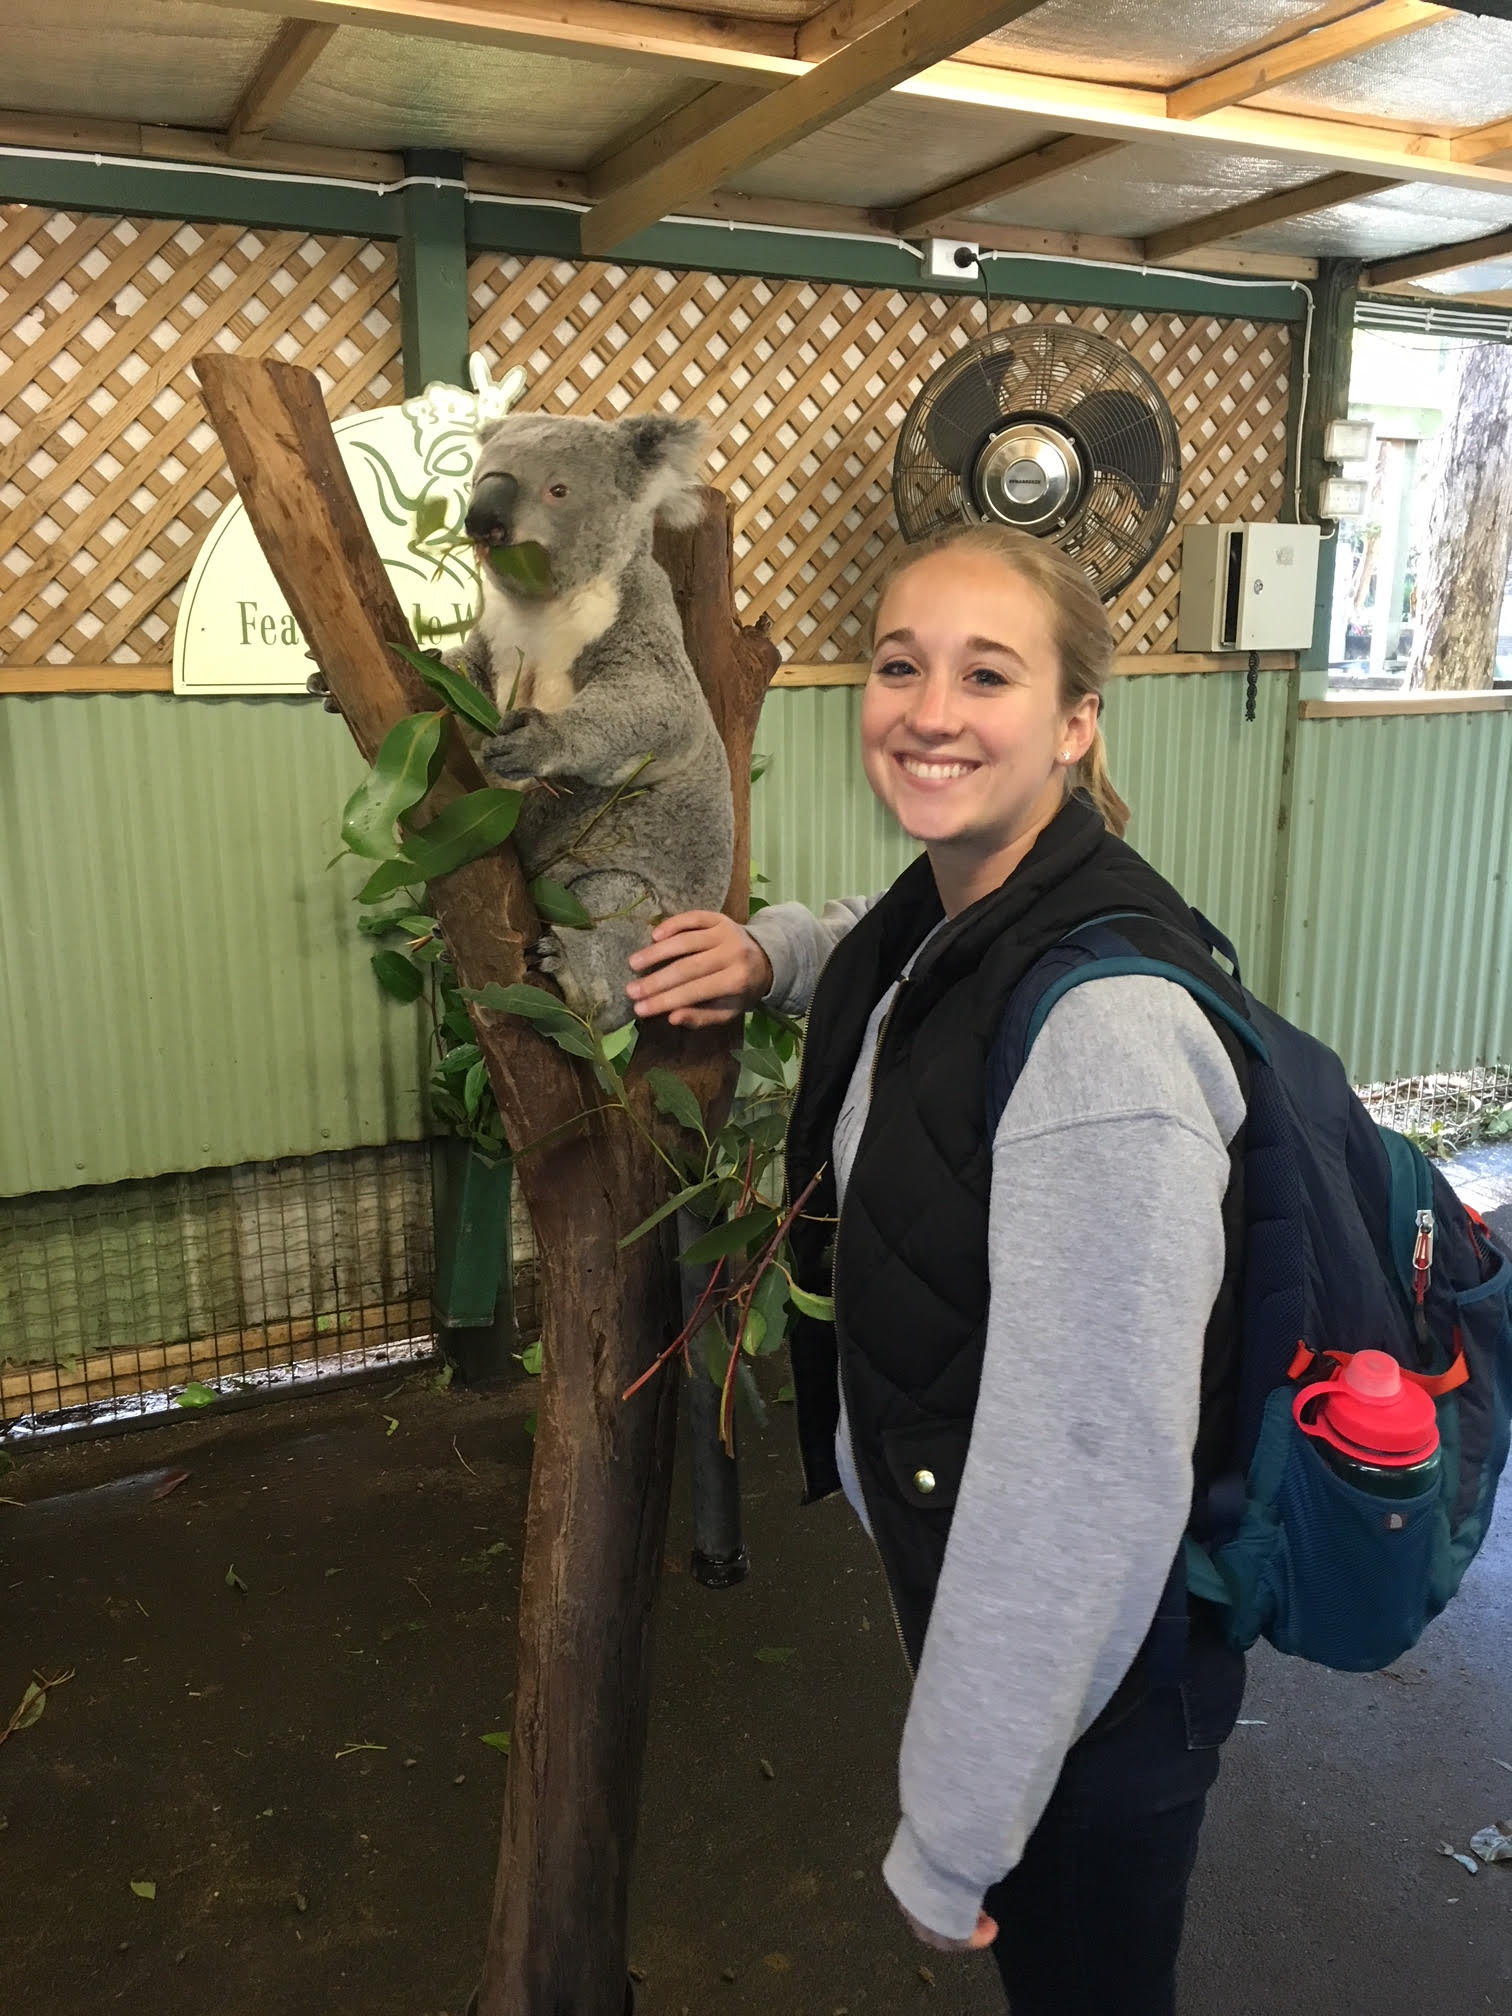 Helen with a koala at Featherdale wildlife park.